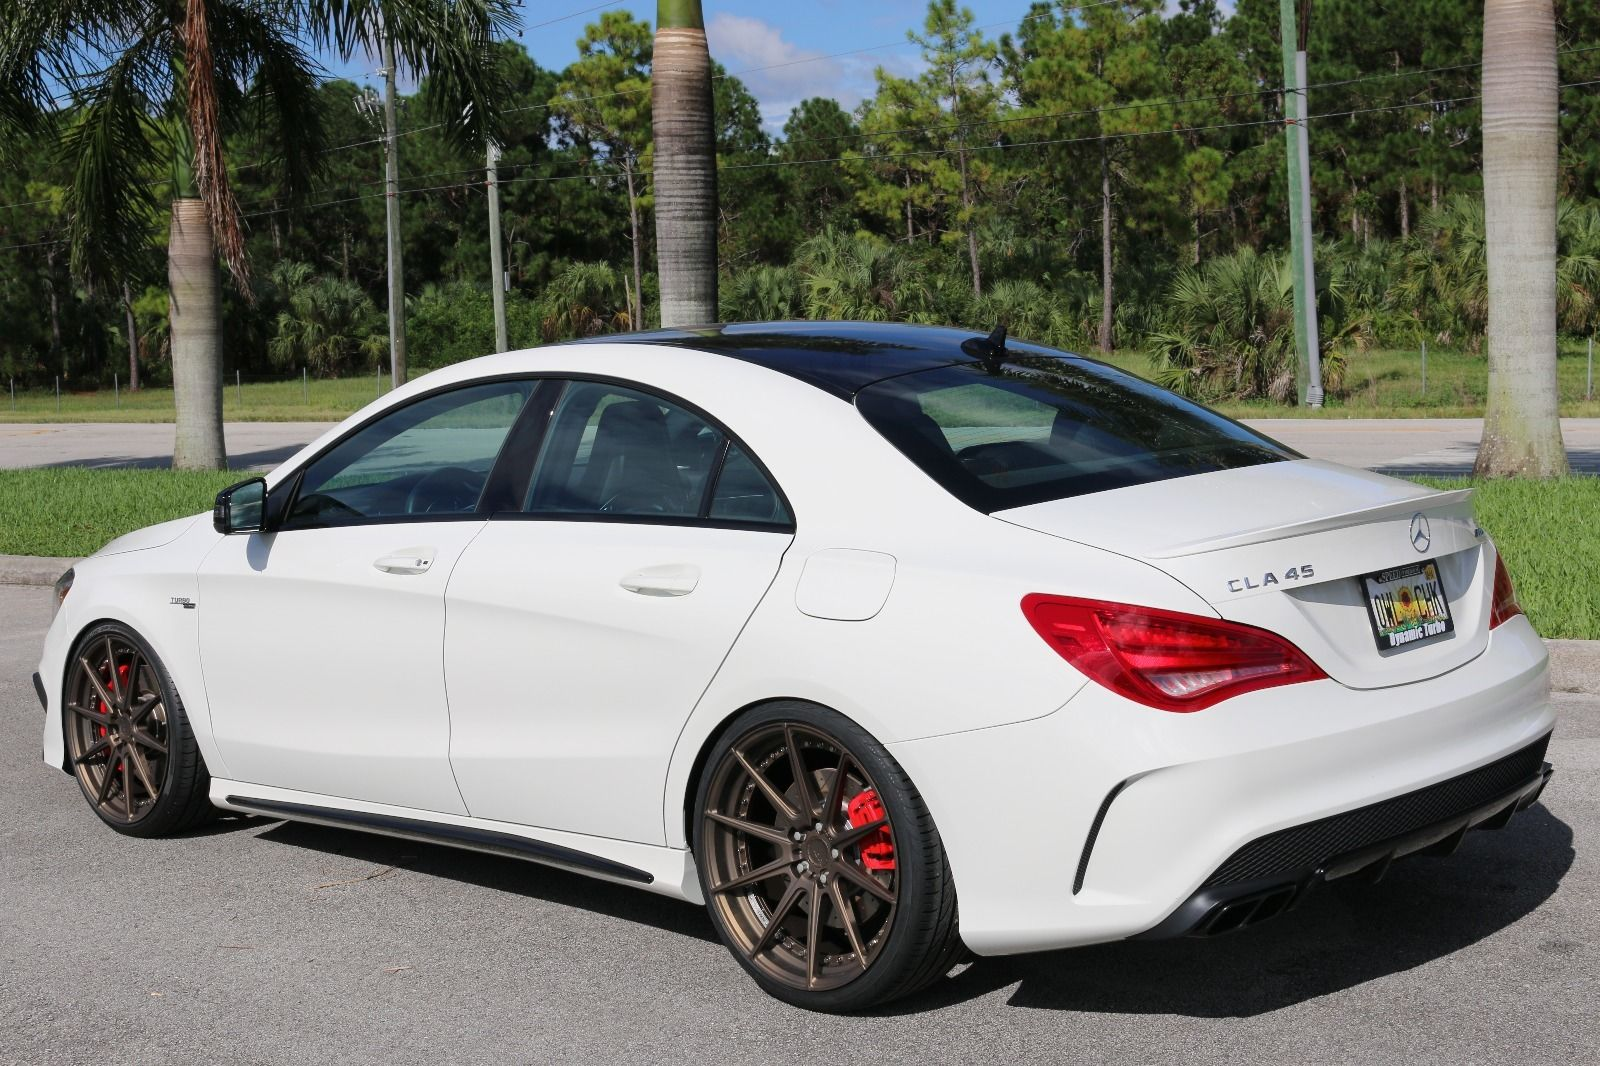 2014 mercedes benz cla45 amg on adv1 m v2 sl wheels benztuning. Cars Review. Best American Auto & Cars Review